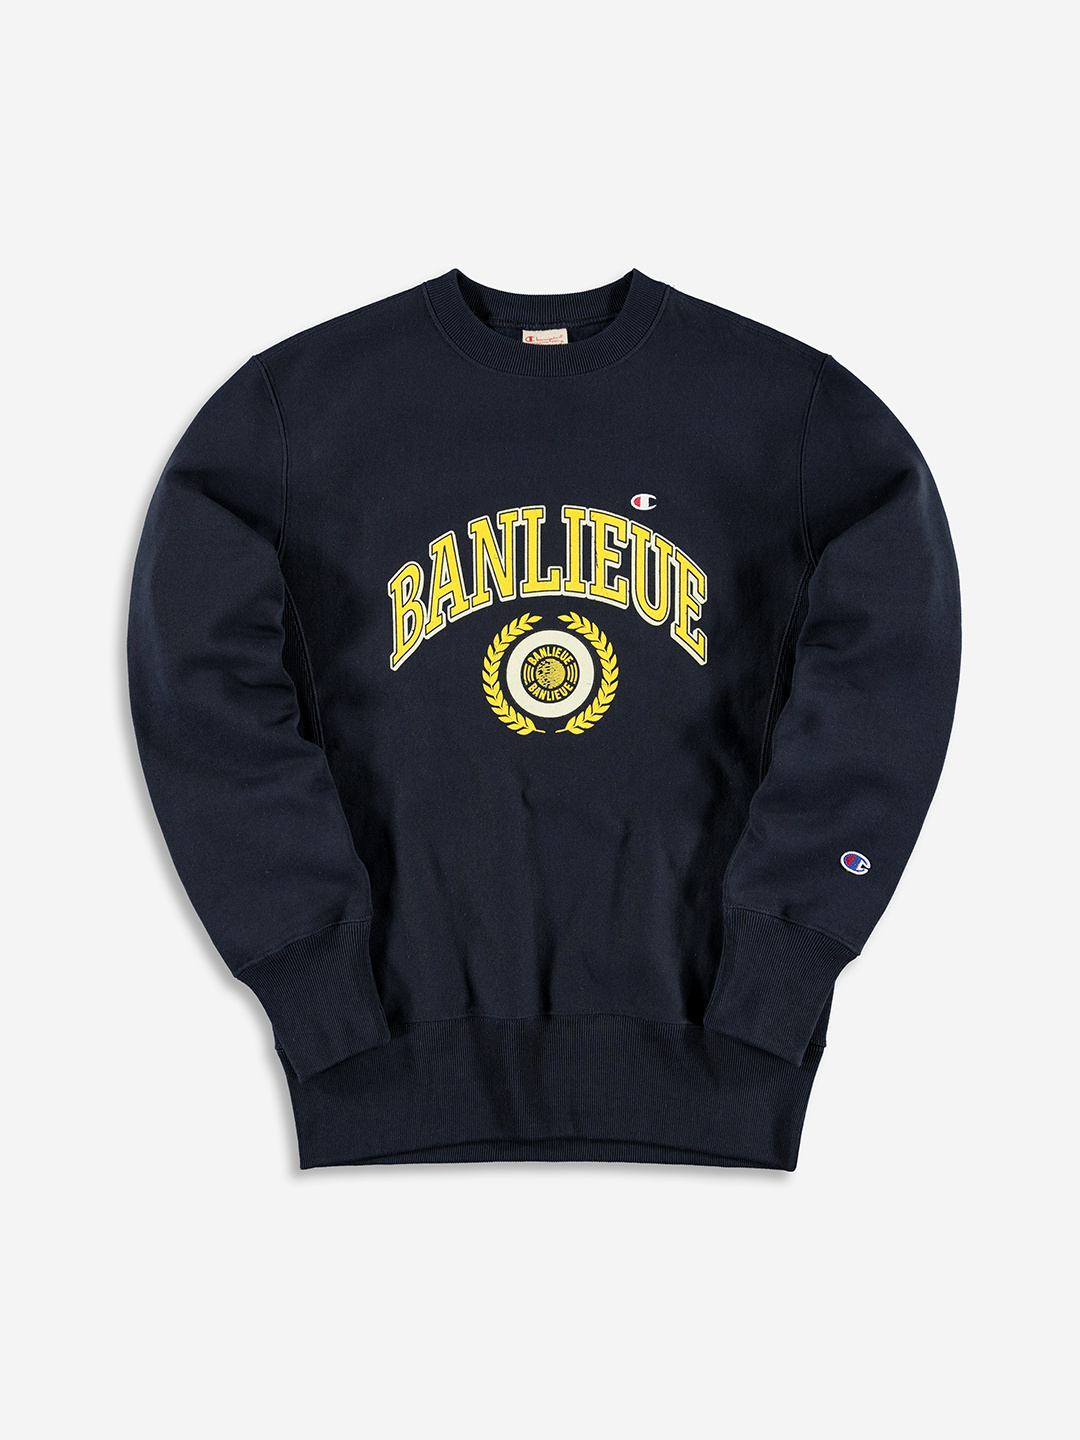 BANLIEUE X CHAMPION SWEATER NAVY